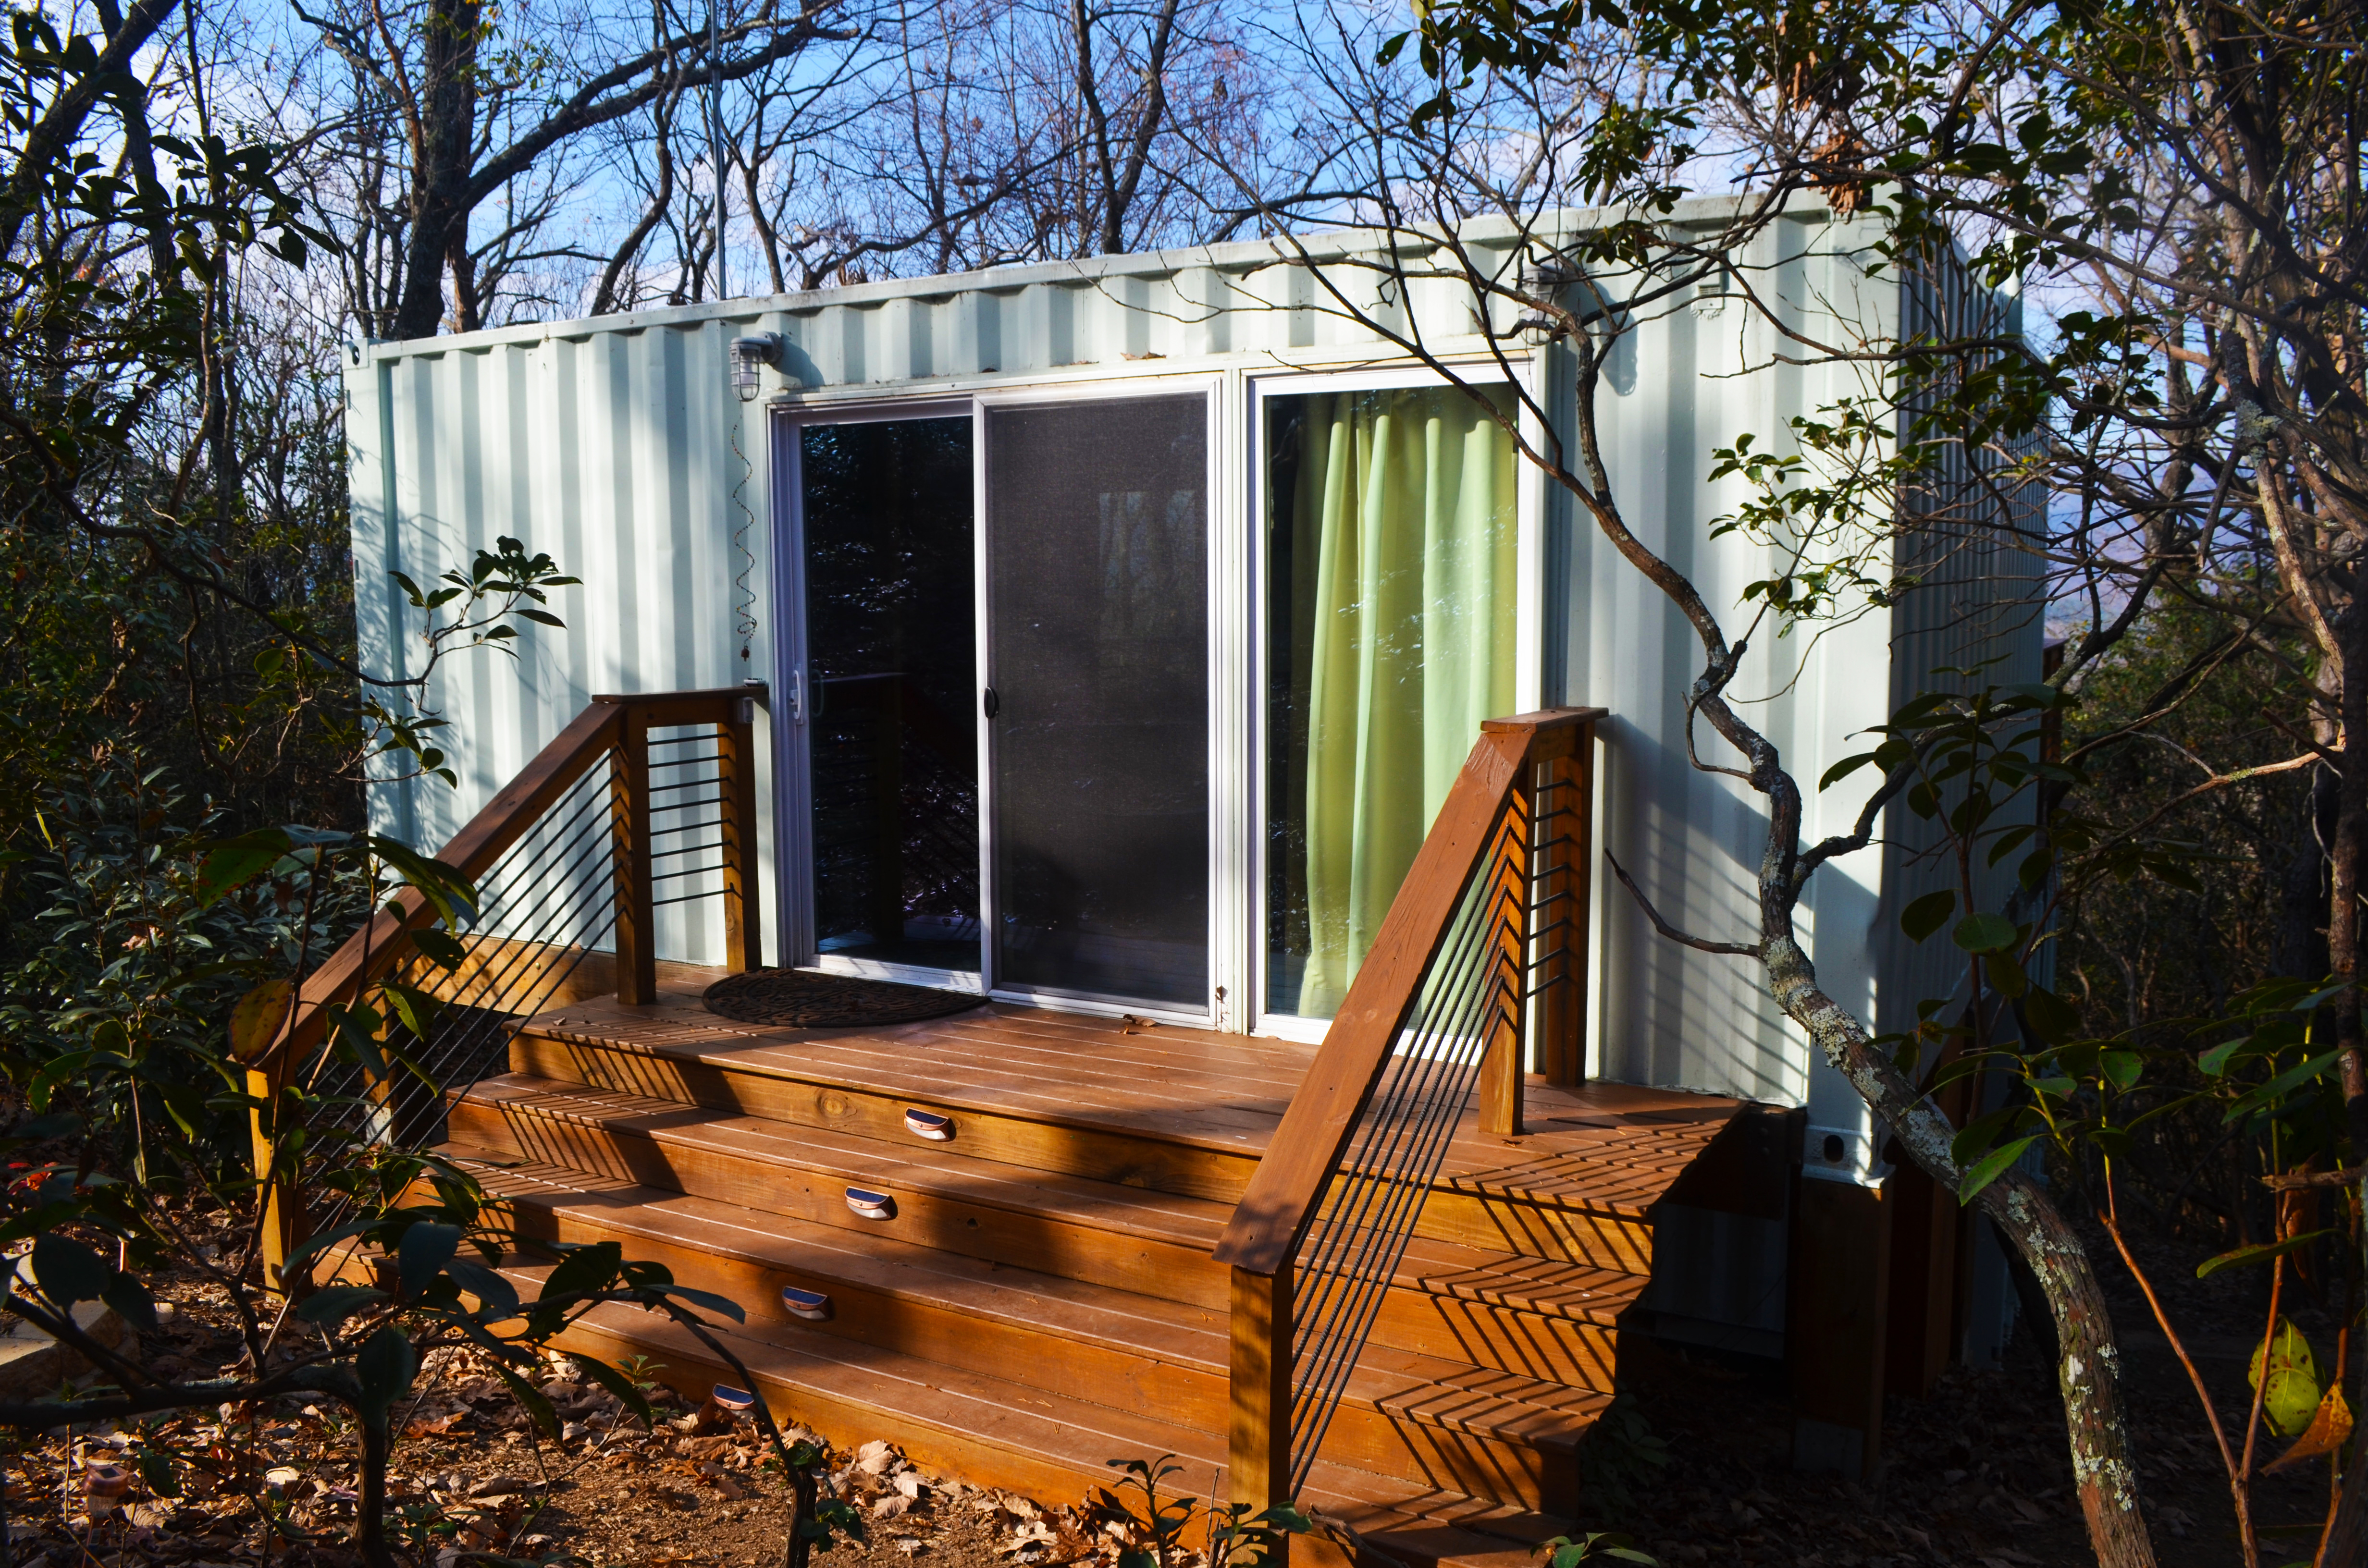 favorite in pin chapel cabins glisson ga places and dahlonega spaces camp